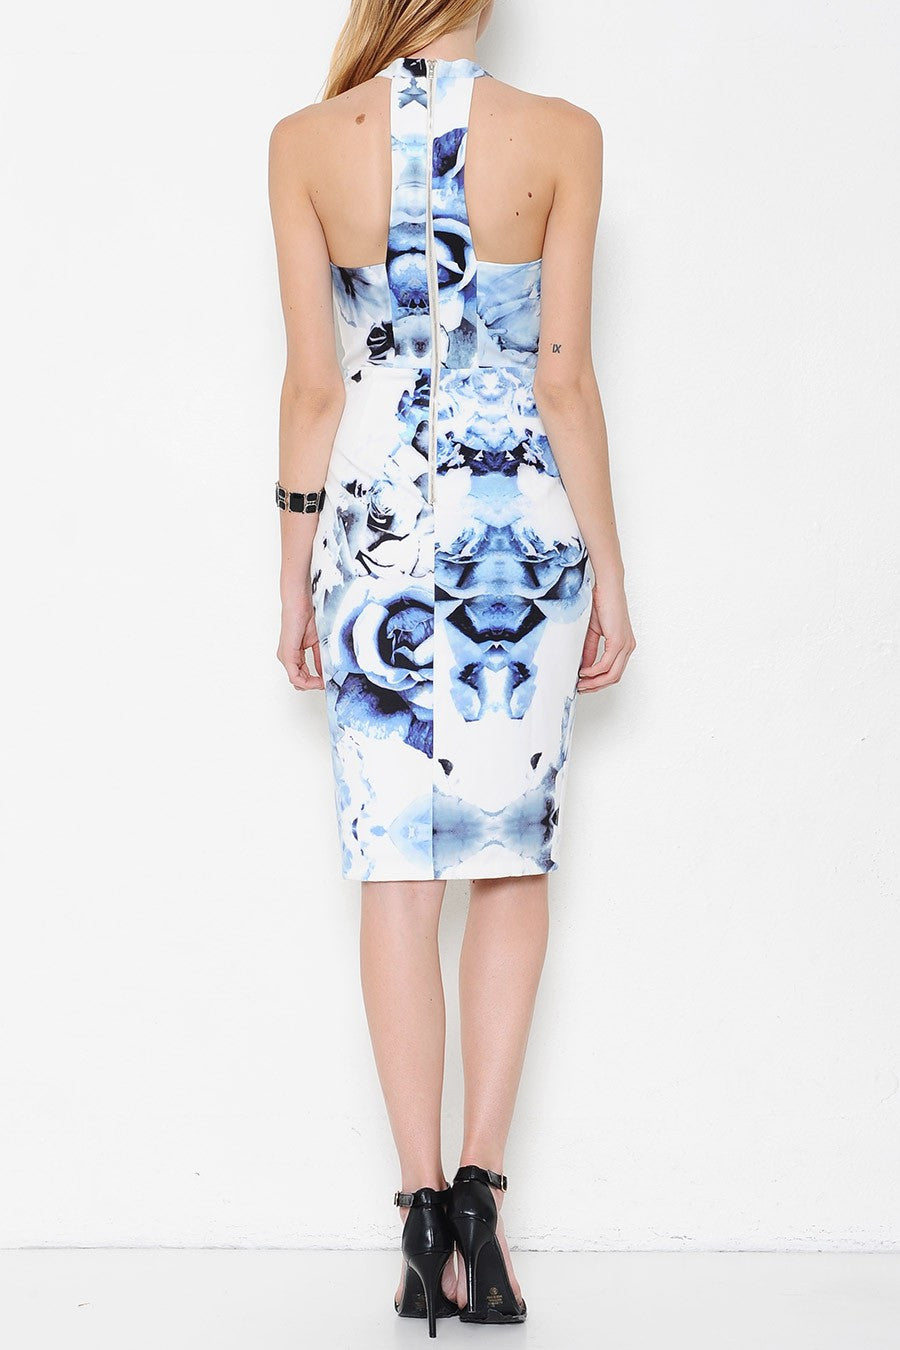 Something Blue Floral Print Midi Dress - White + Blue - Daily Chic